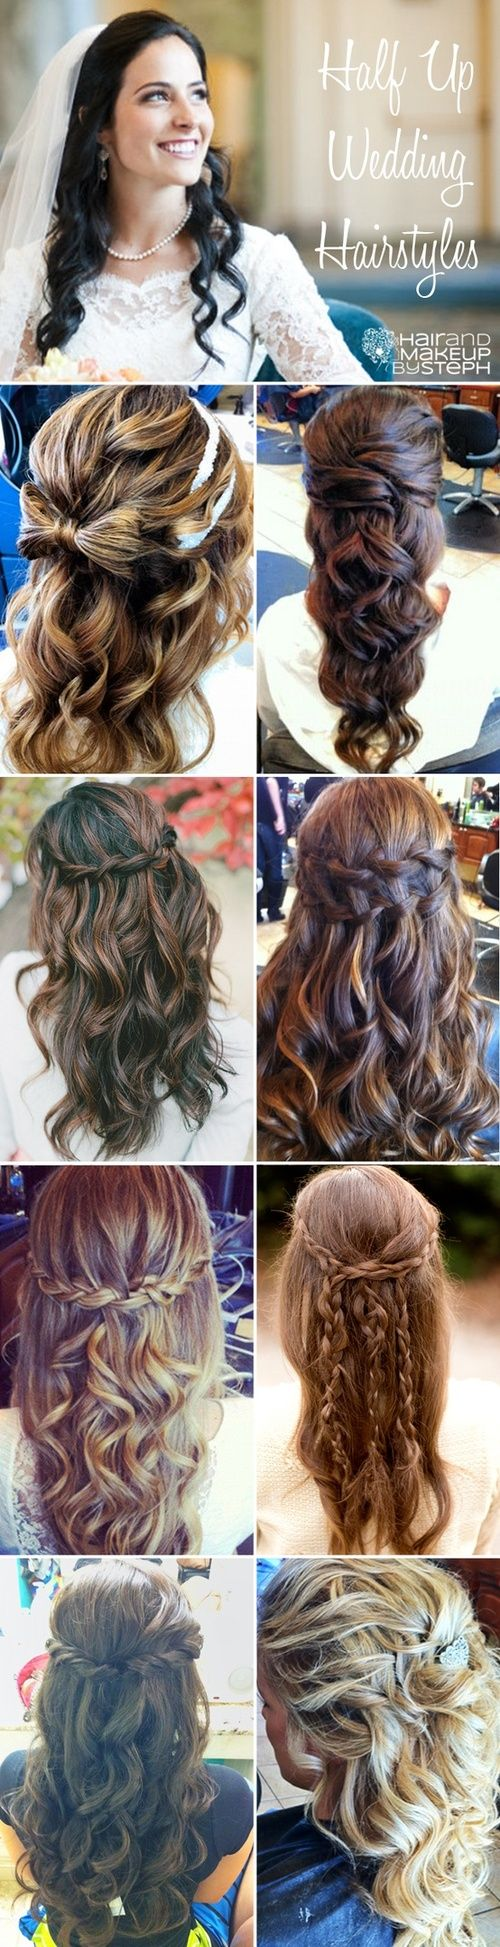 best wedding ideas images on pinterest cute hairstyles